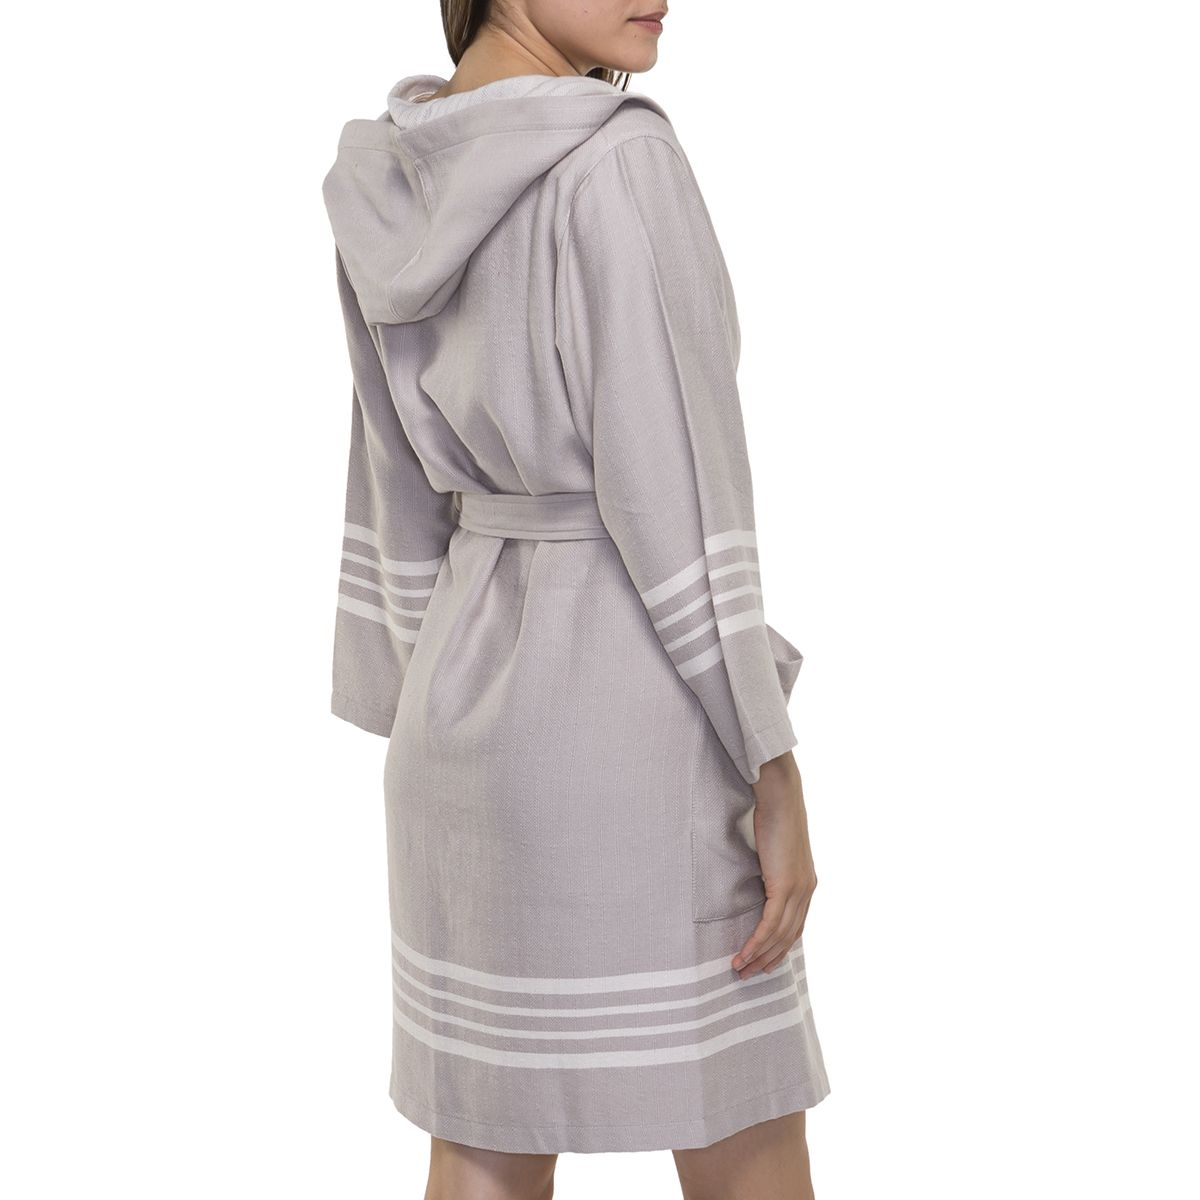 Bathrobe Sultan with hood - Taupe